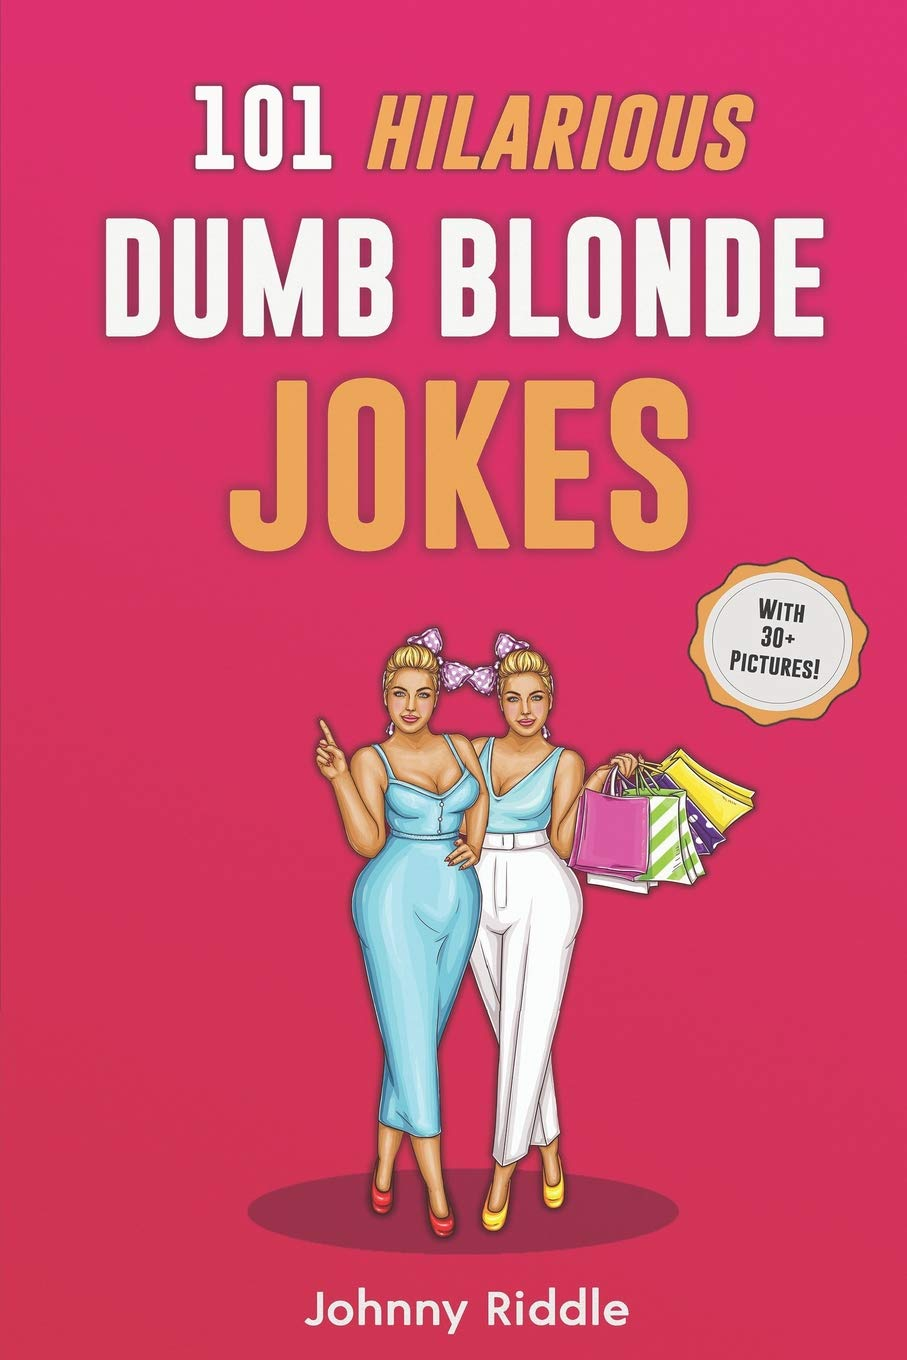 101 Hilarious Dumb Blonde Jokes: Laugh Out Loud With These